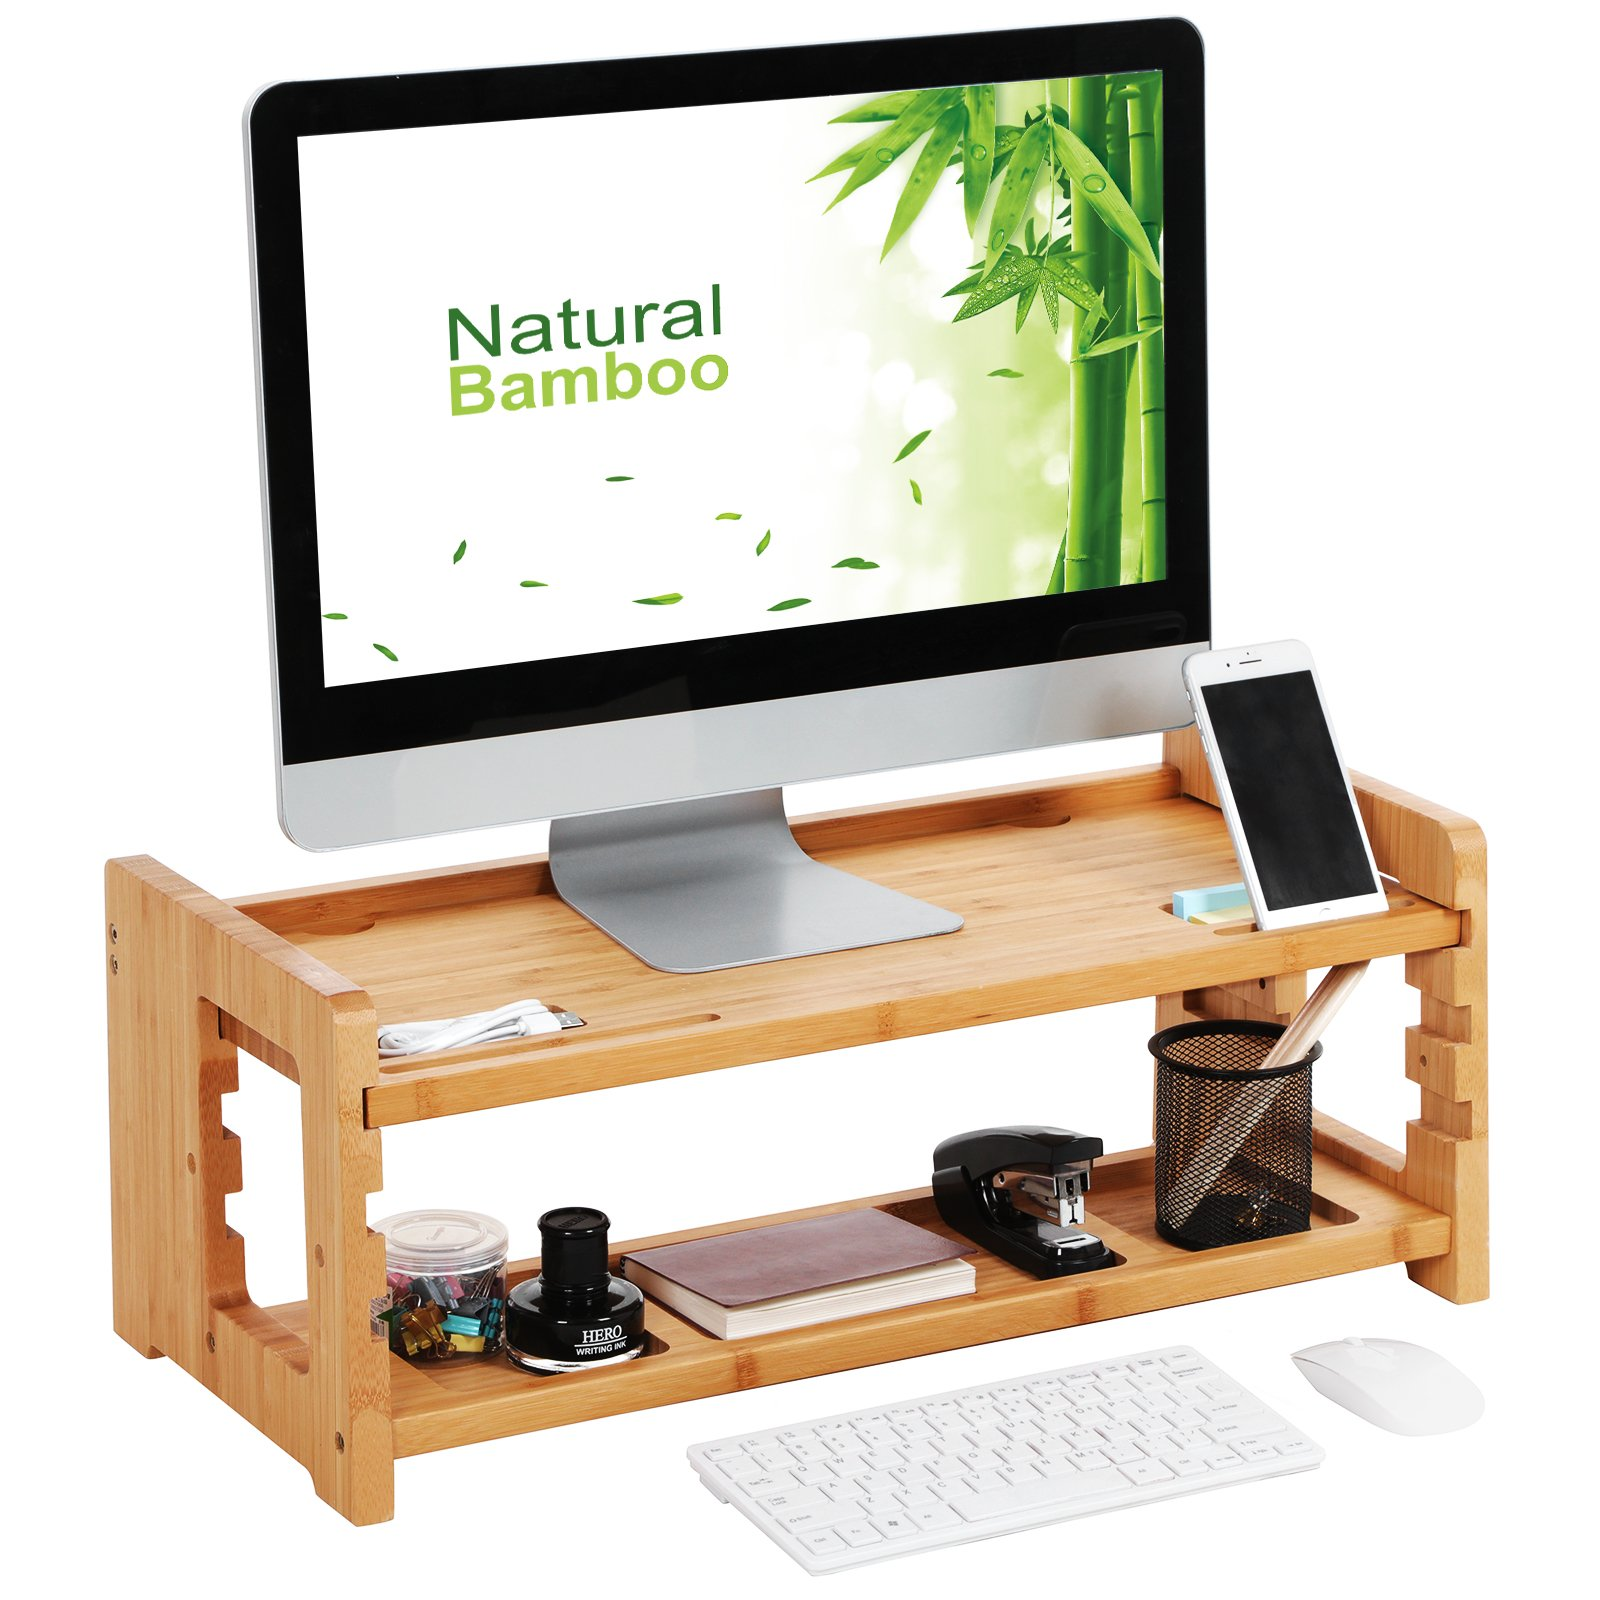 SONGMICS Bamboo Height Adjustable Monitor Stand, Desktop Organizer, Computer Laptop Riser with Accessories Storage Shelf 27.2'' L x 11.4'' W x 10.2'' H, Natural Grain, ULLD303N